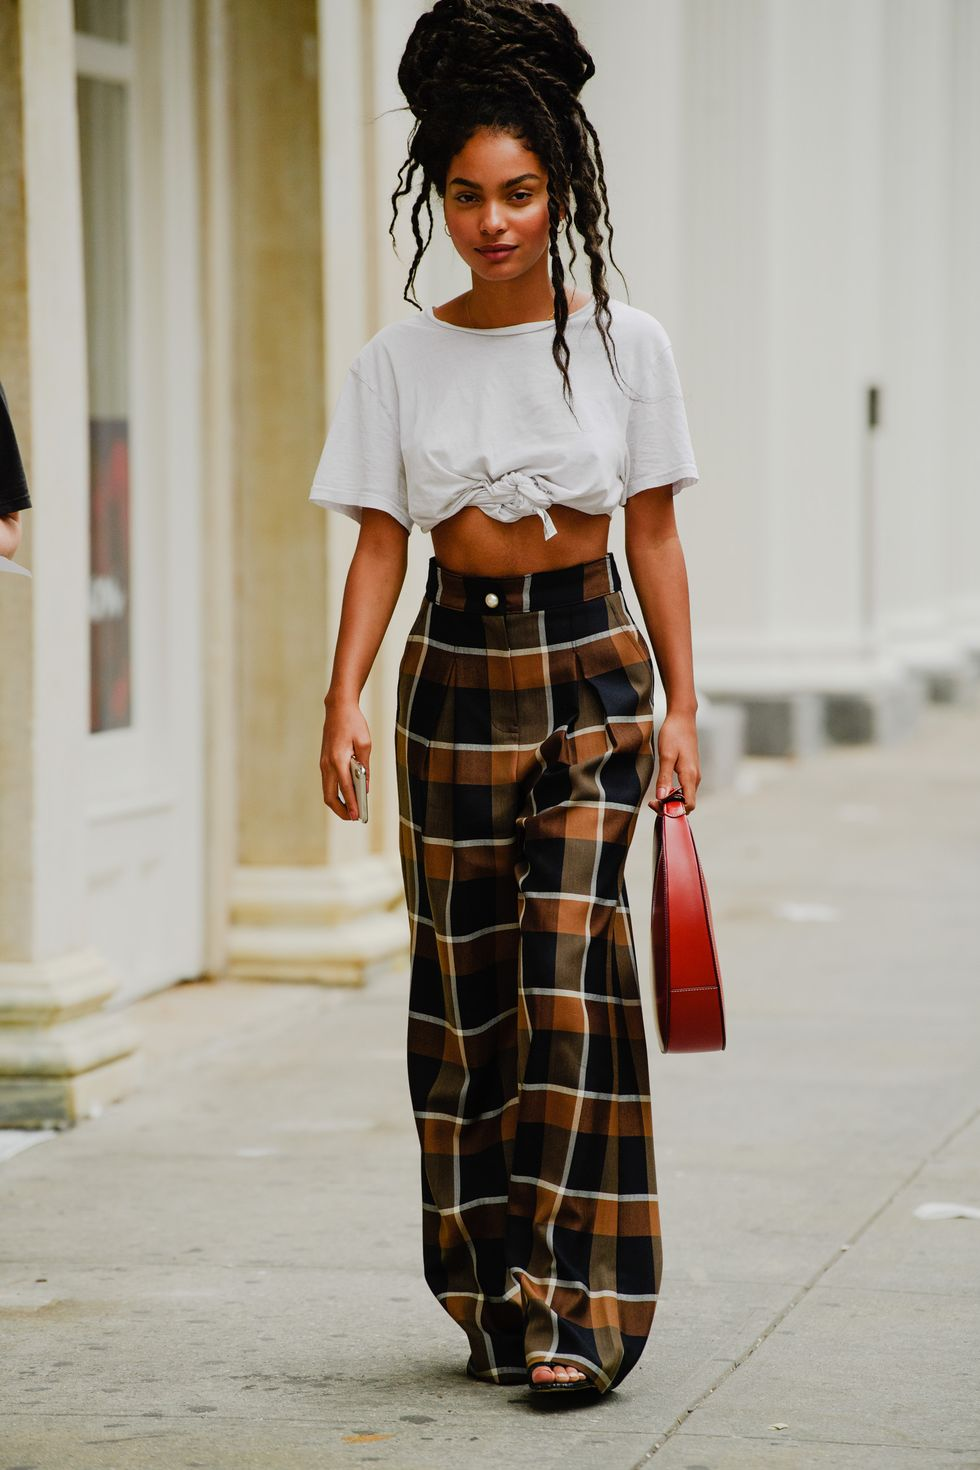 The Coolest New York Fashion Week Street Style Looks